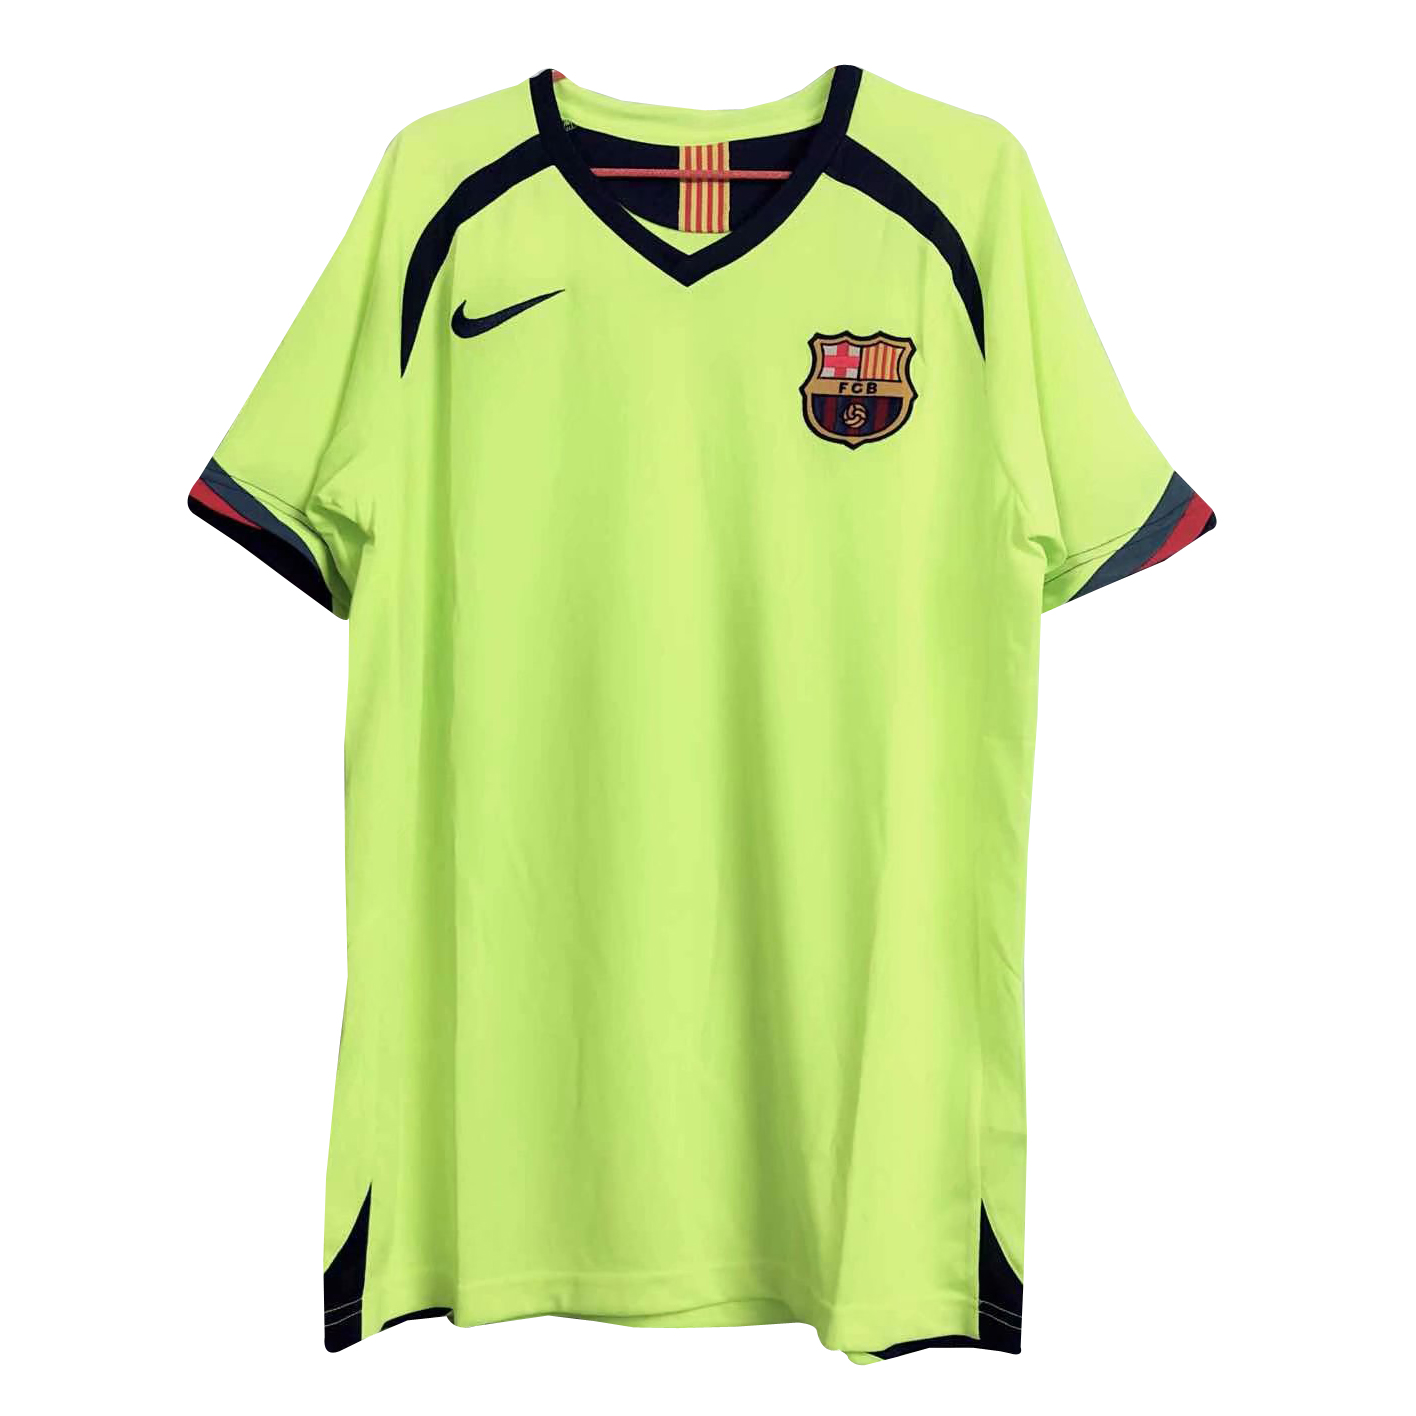 85239d474c1 US  17.8 - Barcelona Retro Away Jersey Men s 2005 06 - www.fcsoccerworld.com